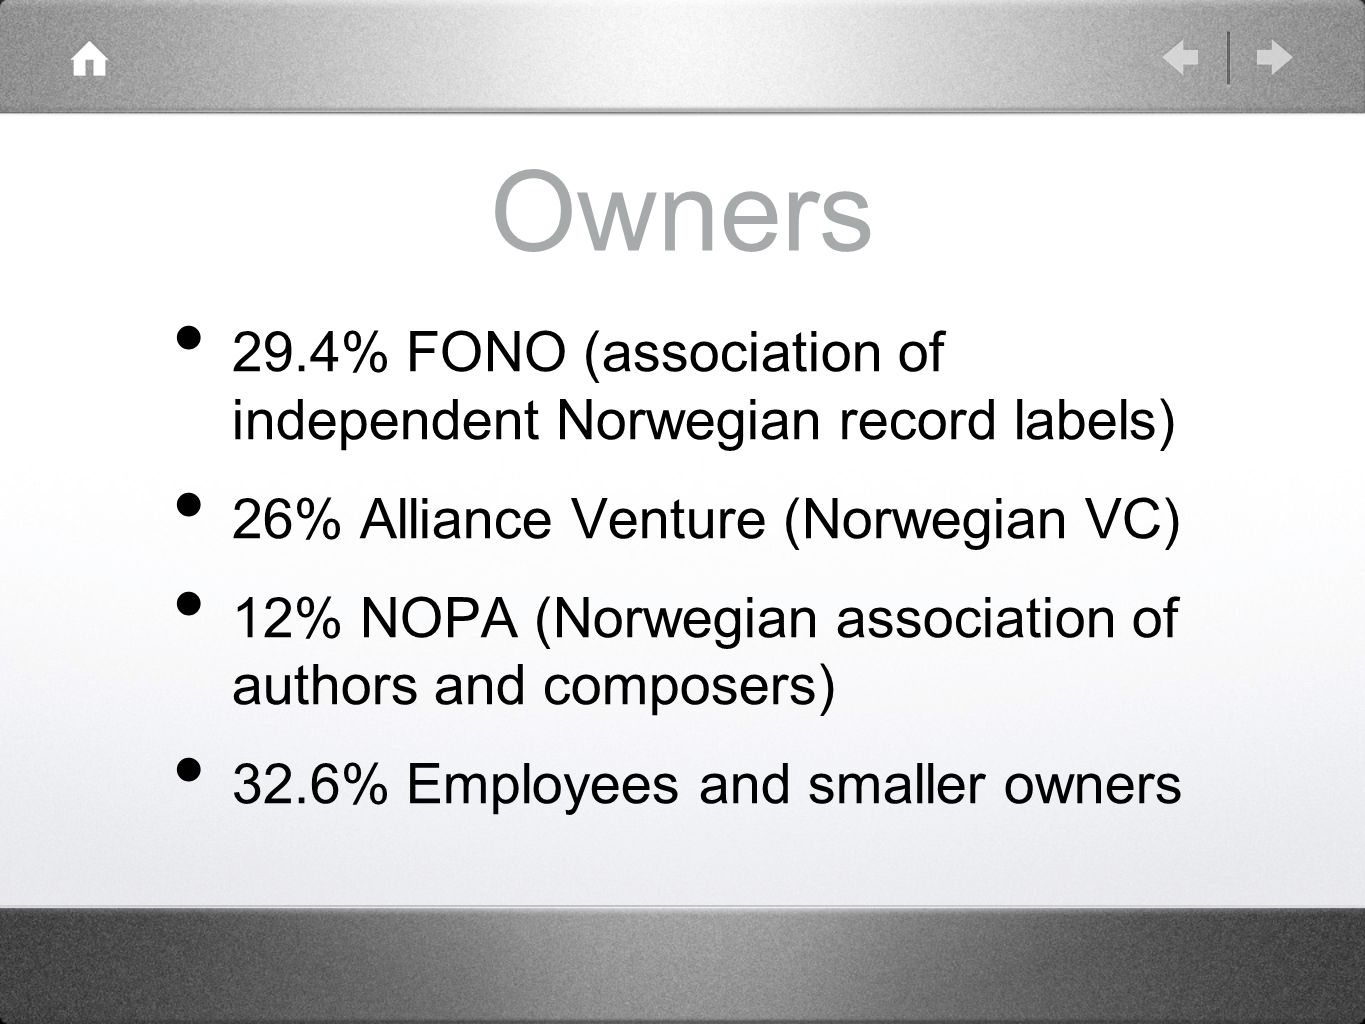 Owners 29.4% FONO (association of independent Norwegian record labels) 26% Alliance Venture (Norwegian VC) 12% NOPA (Norwegian association of authors